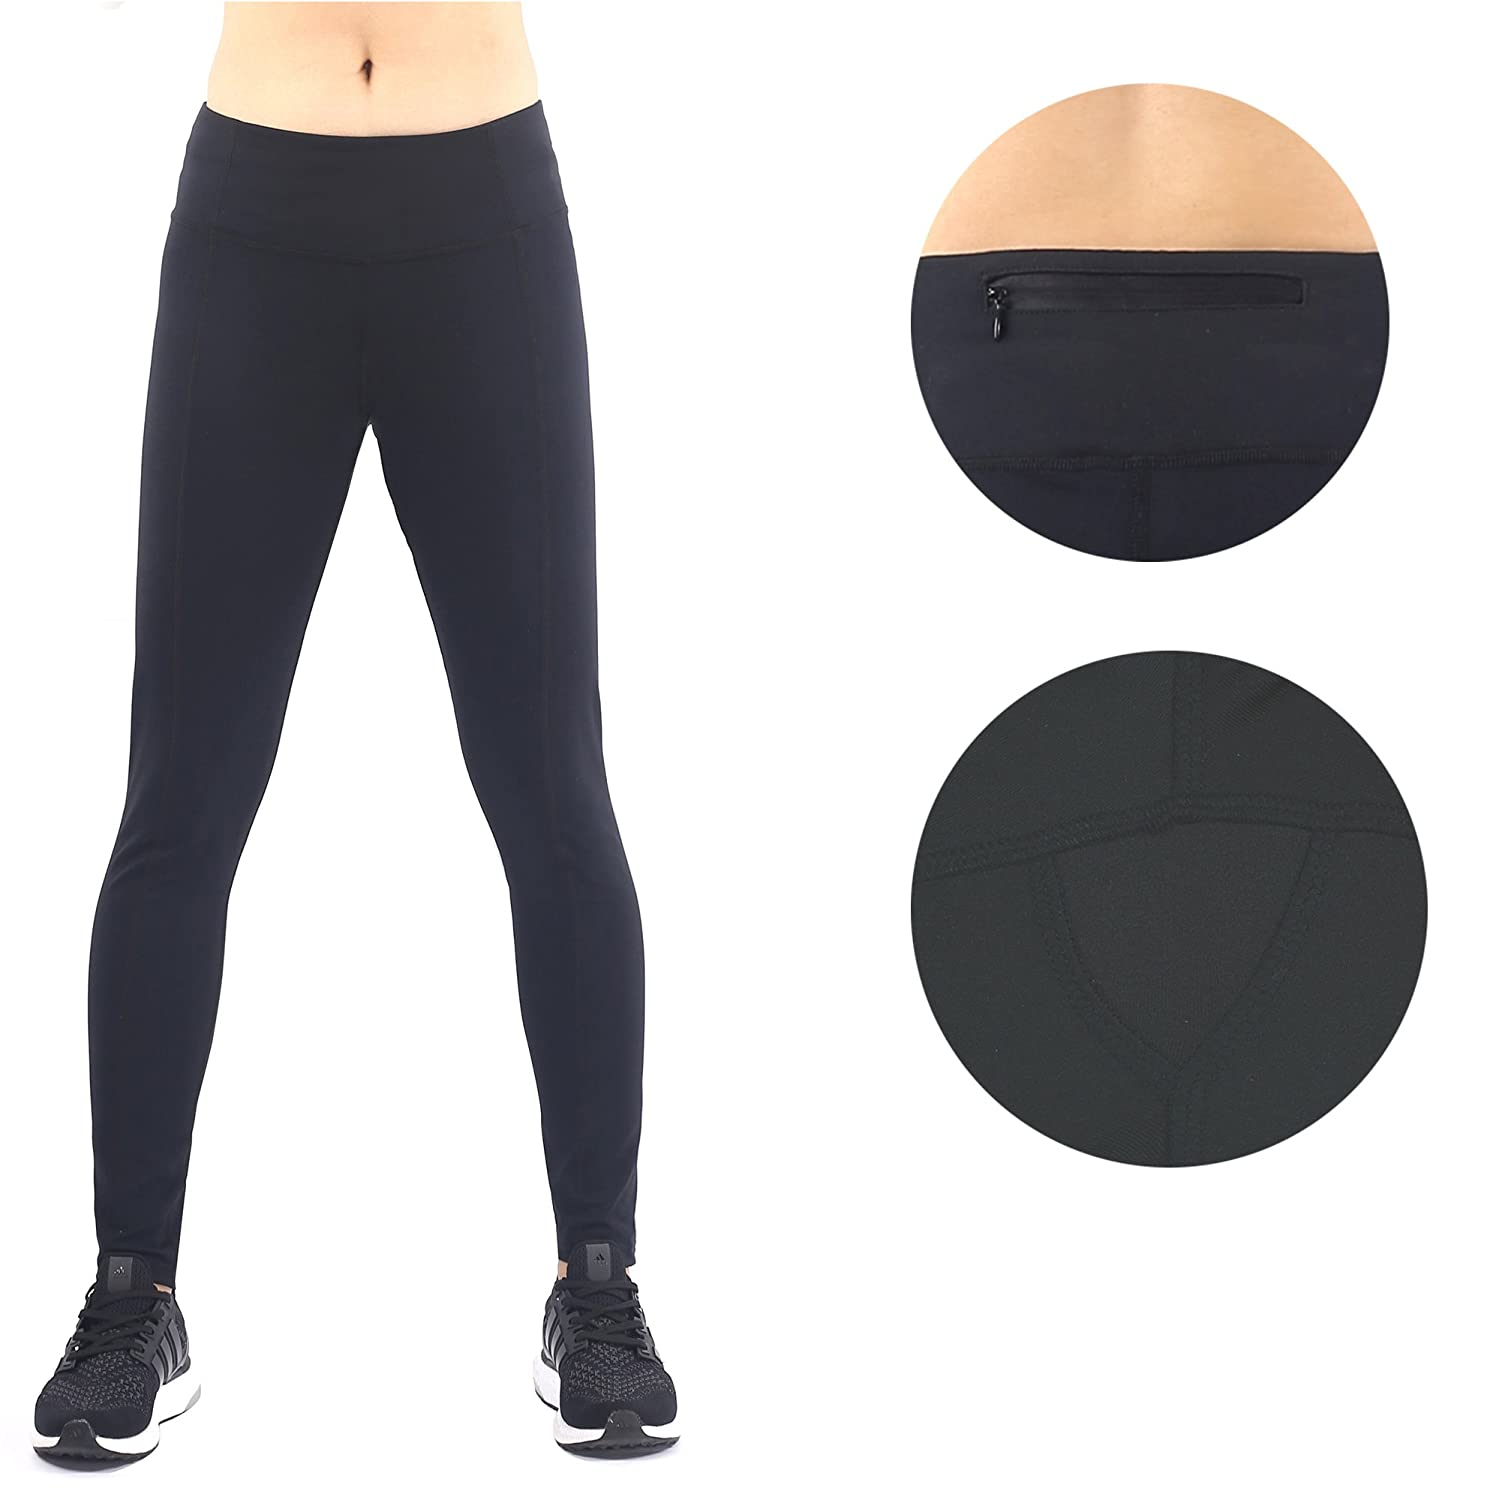 Sugar Pocket Womens Workout Leggings Ankle Length Yoga Pants